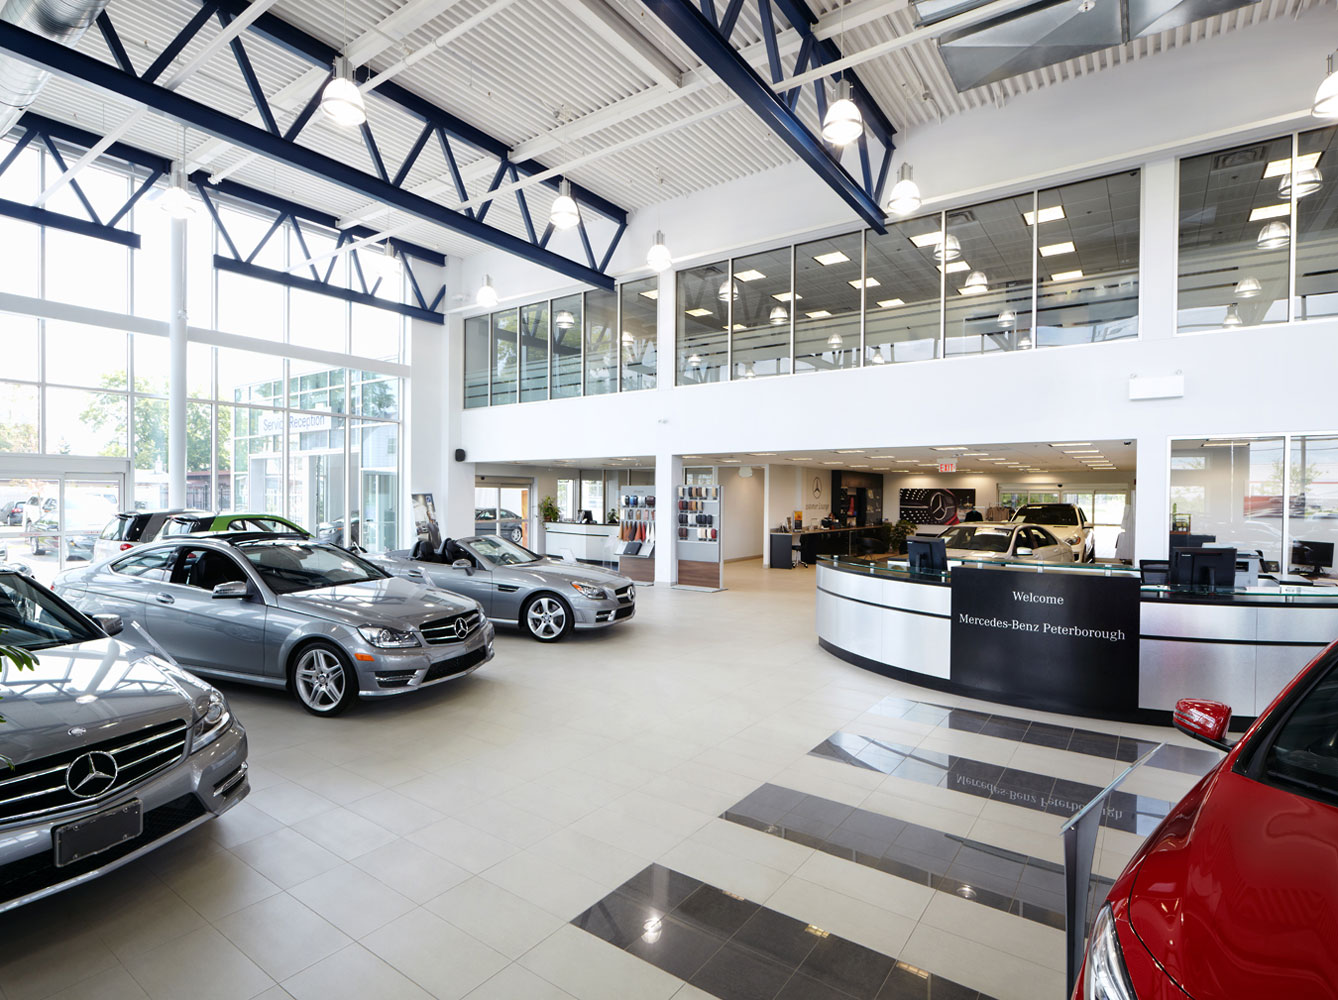 Clients projects mortlock construction for Mercedes benz peterborough